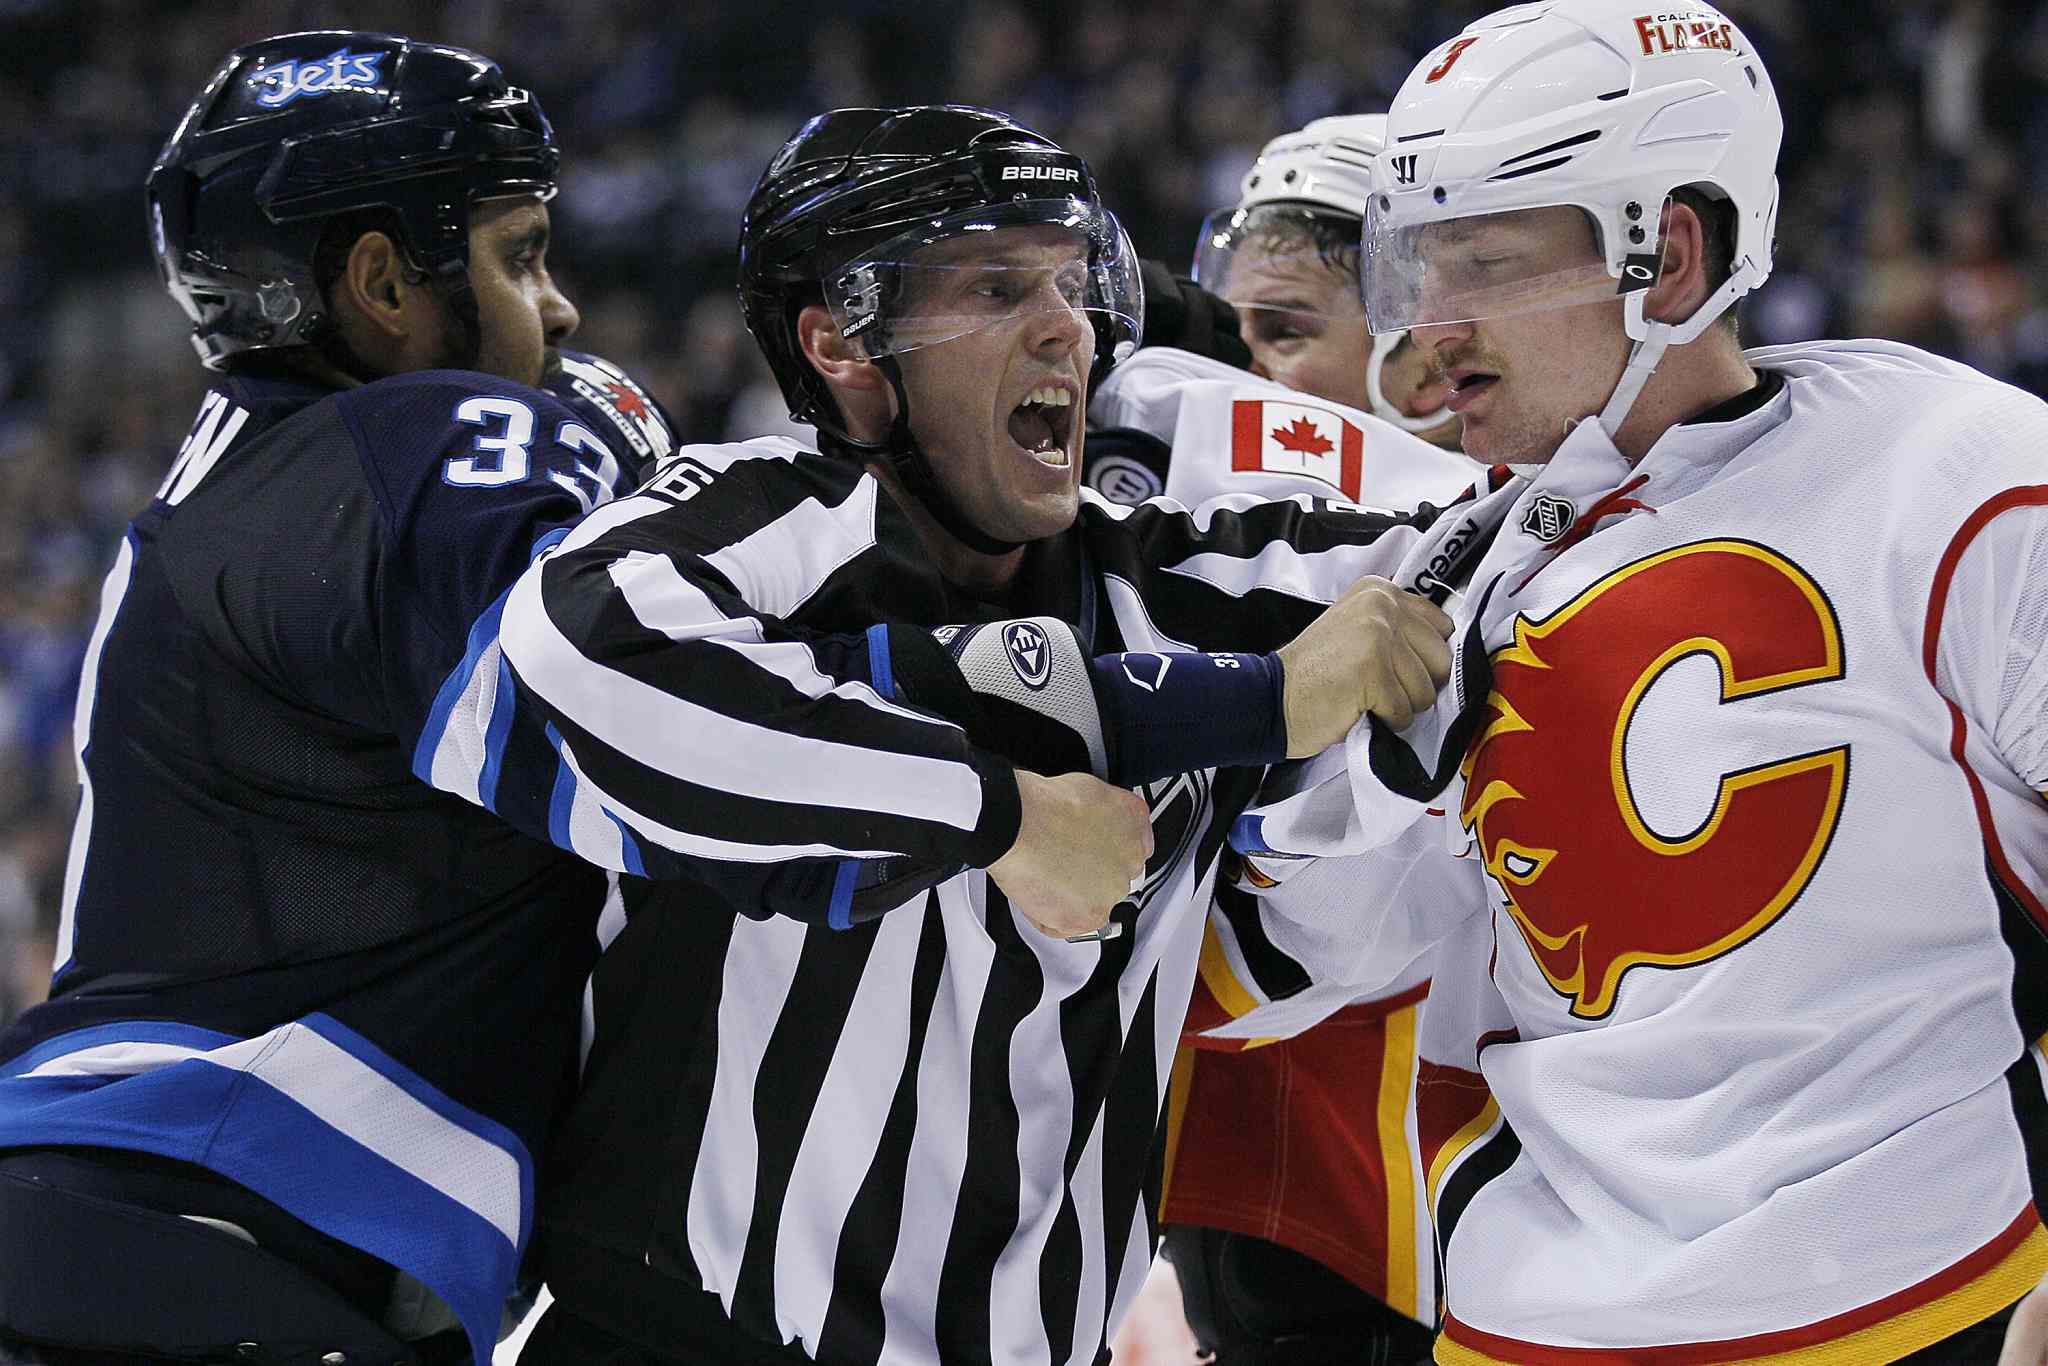 A linesman attempts to split up Winnipeg Jets' Dustin Byfuglien (33) and Calgary Flames' Ladislav Smid (3) and Chris Butler (44) after the second period buzzer goes during NHL action in Winnipeg on Monday, Nov. 18, 2013.